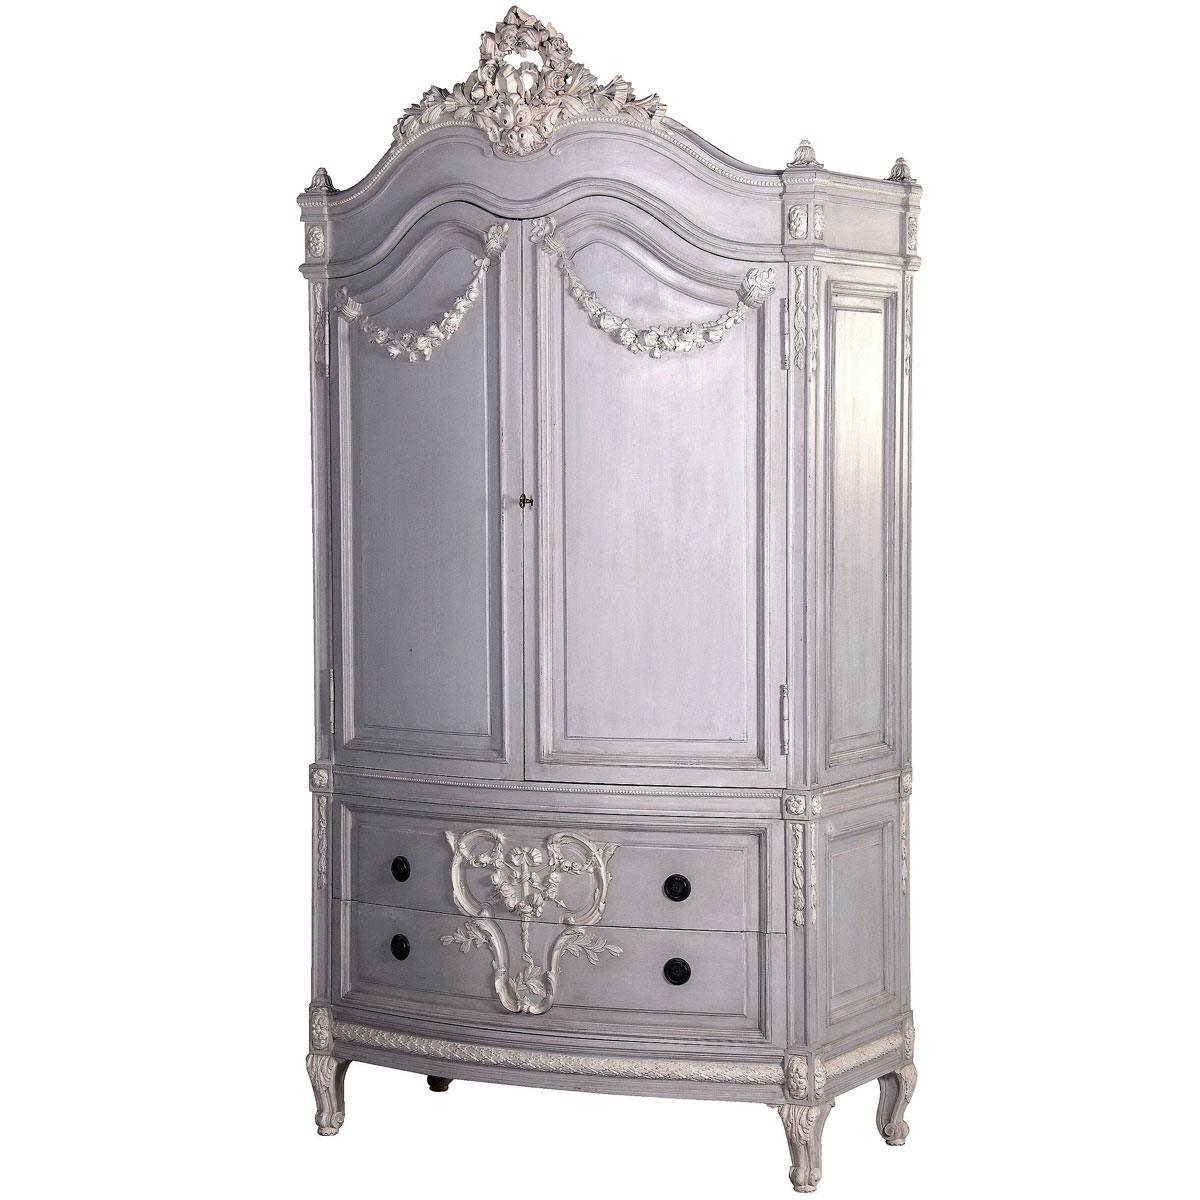 French Wardrobes | Shabby Chic Wardrobes | French Bedroom ...